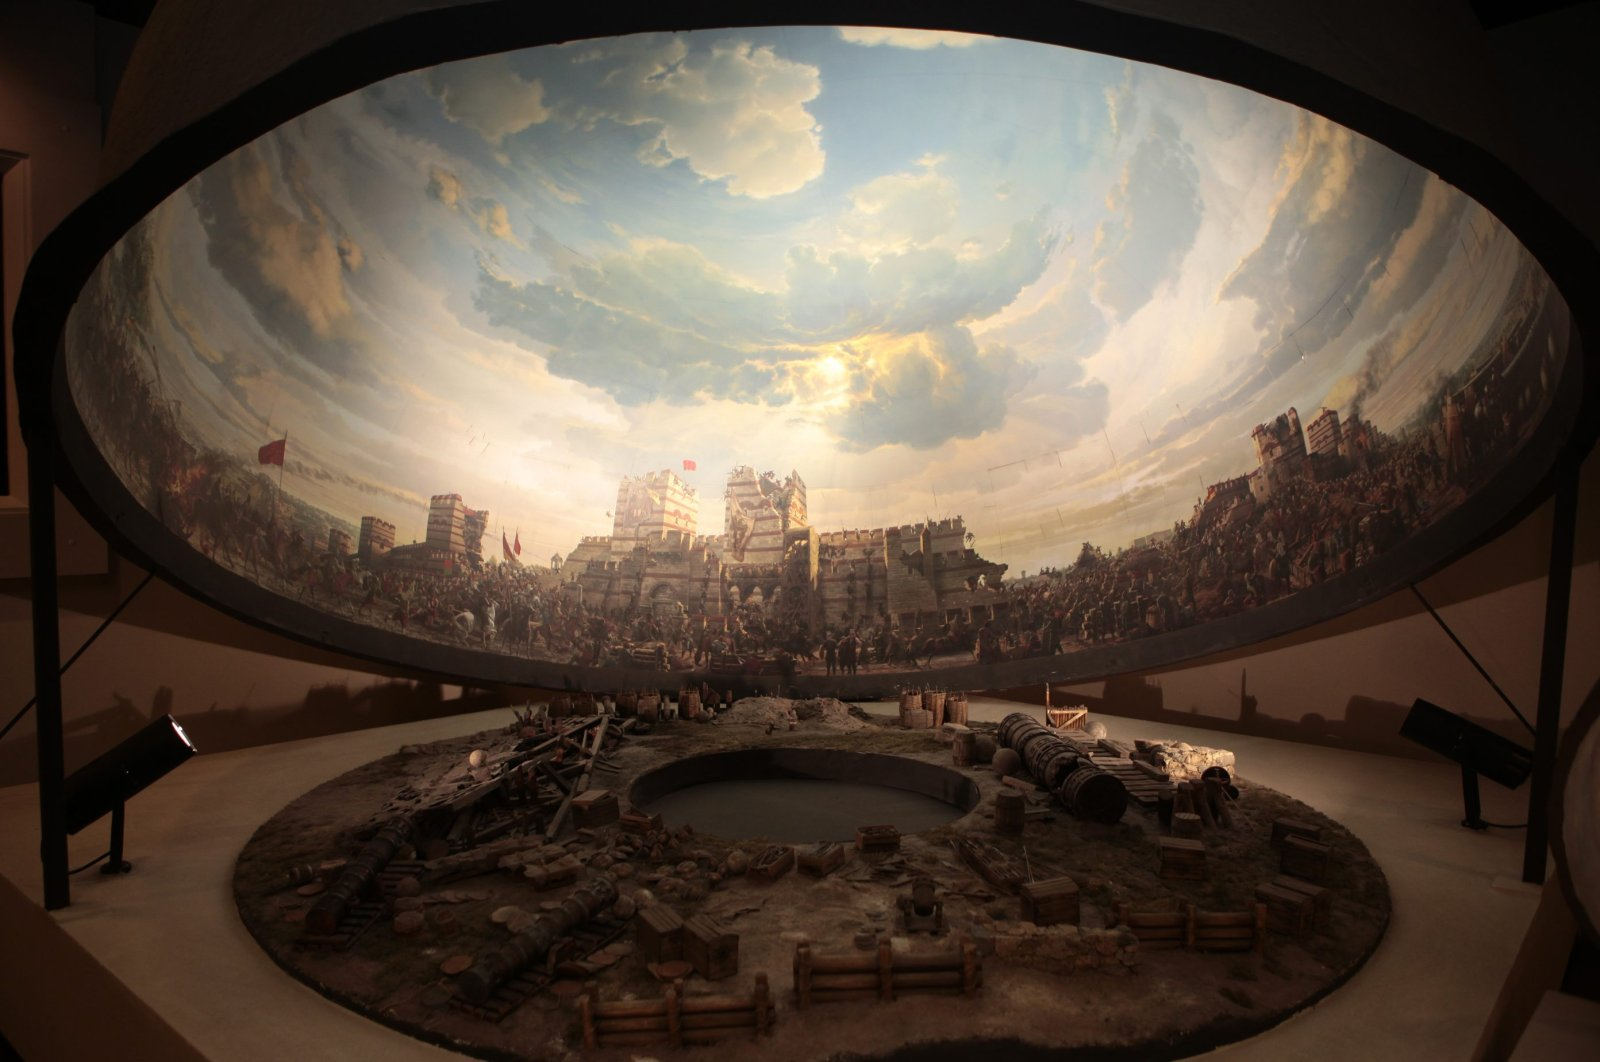 As one of the most popular spots in Istanbul, the Panaroma 1453 Museum gives its visitors a chance to relive the conquest of Istanbul. (Photo by Şüheda Aykut)